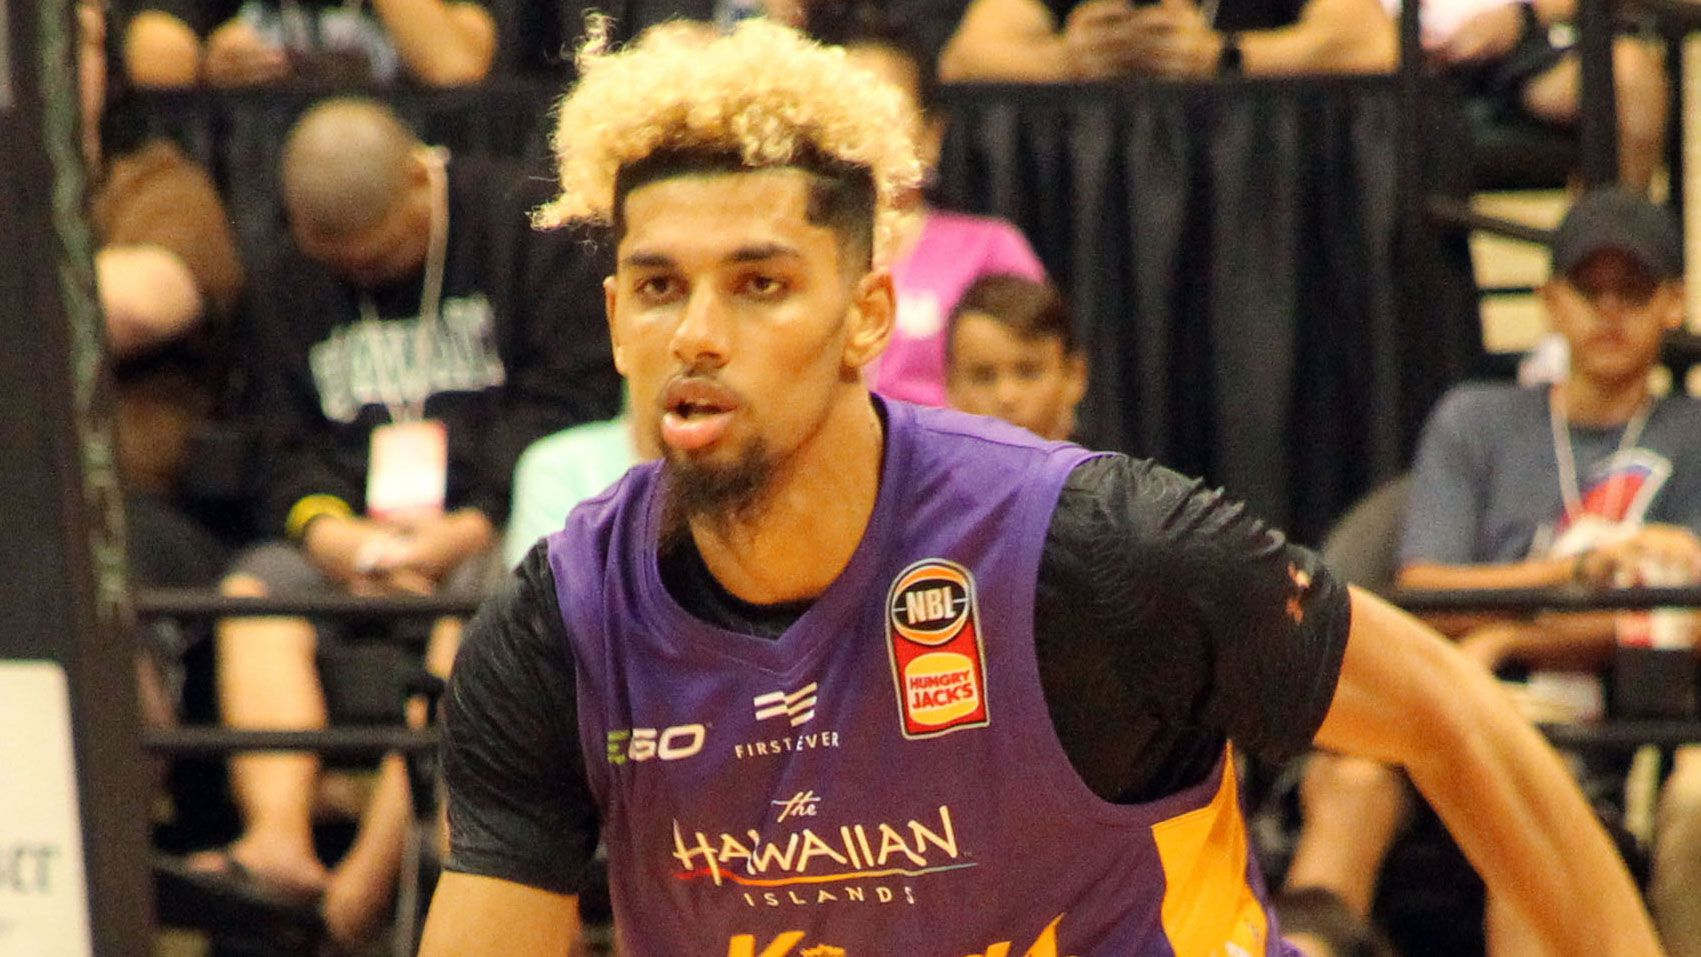 Sydney Kings rookie Brian Bowen set to attract NBA attention in debut NBL season